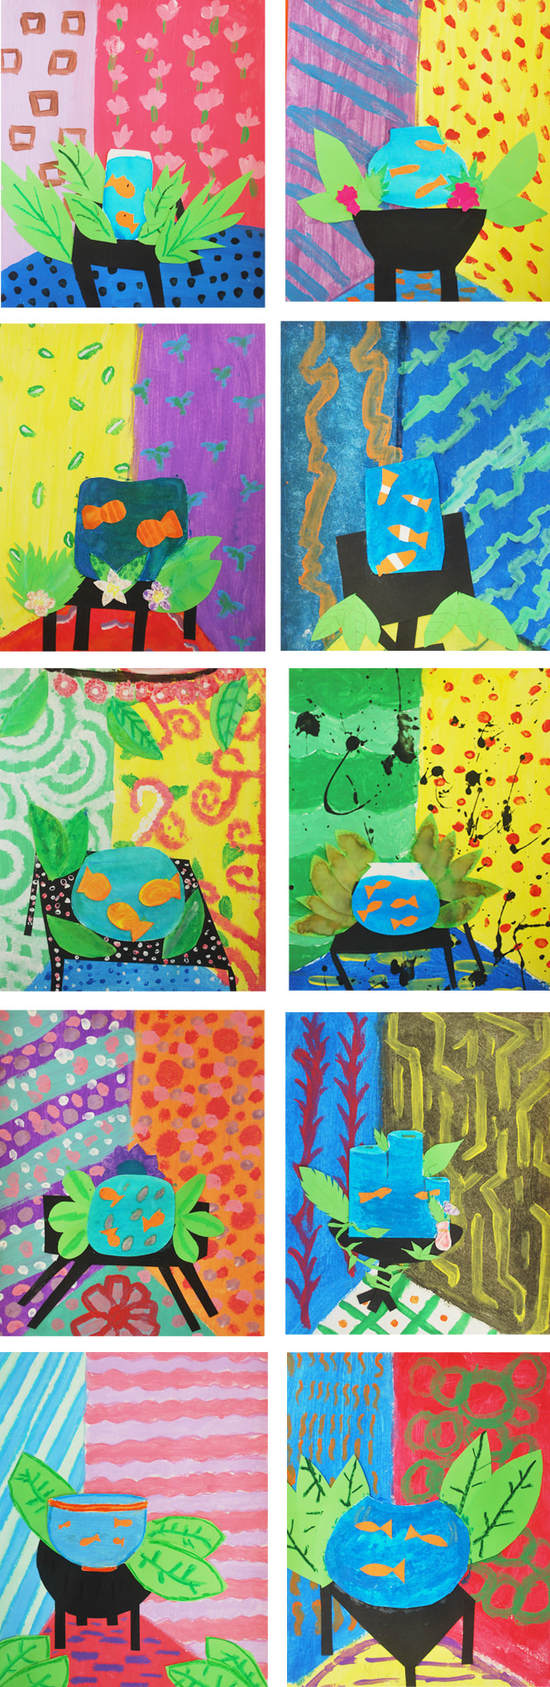 Matisse-Inspired Collages 6th Grade Art Project